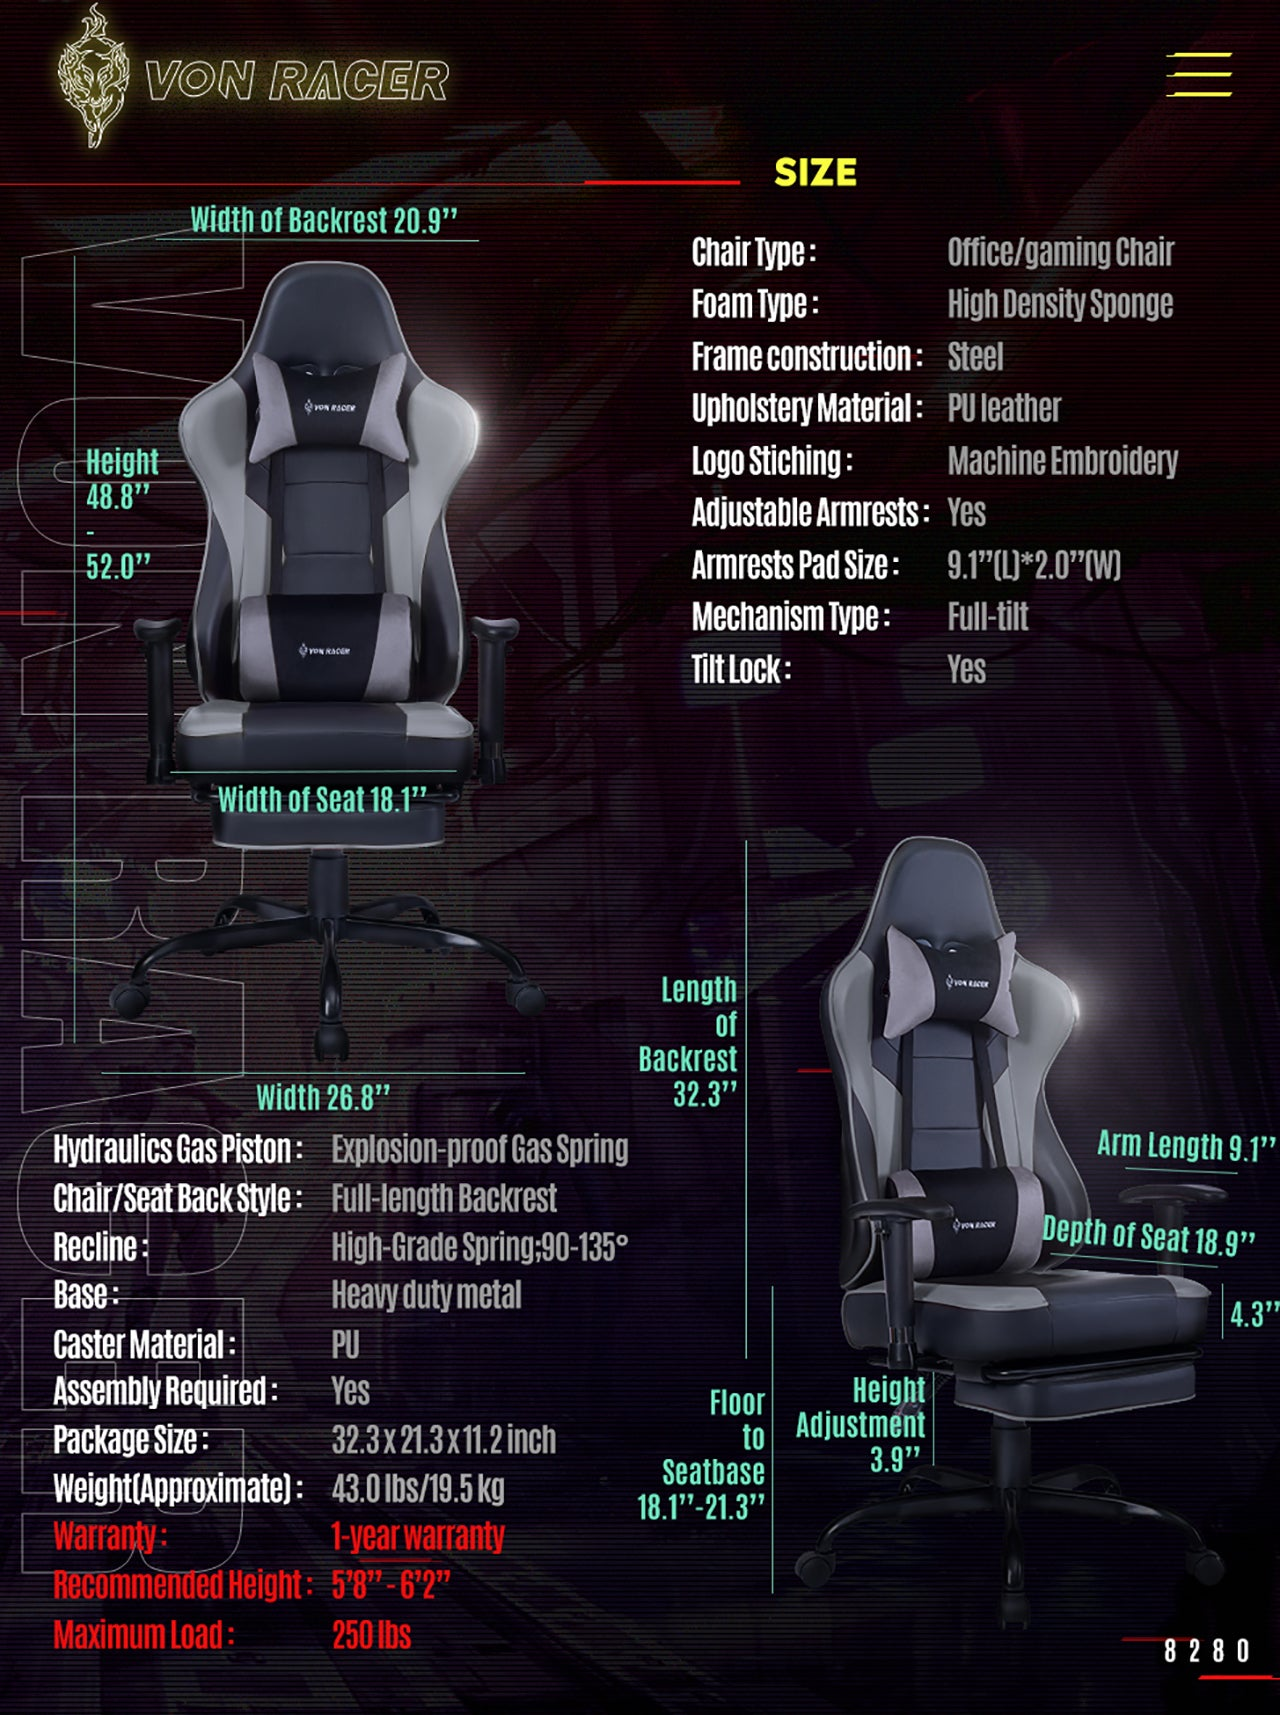 VON RACER ERGONOMIC GAMING CHAIR 8280 GRAY SPECIFICATION